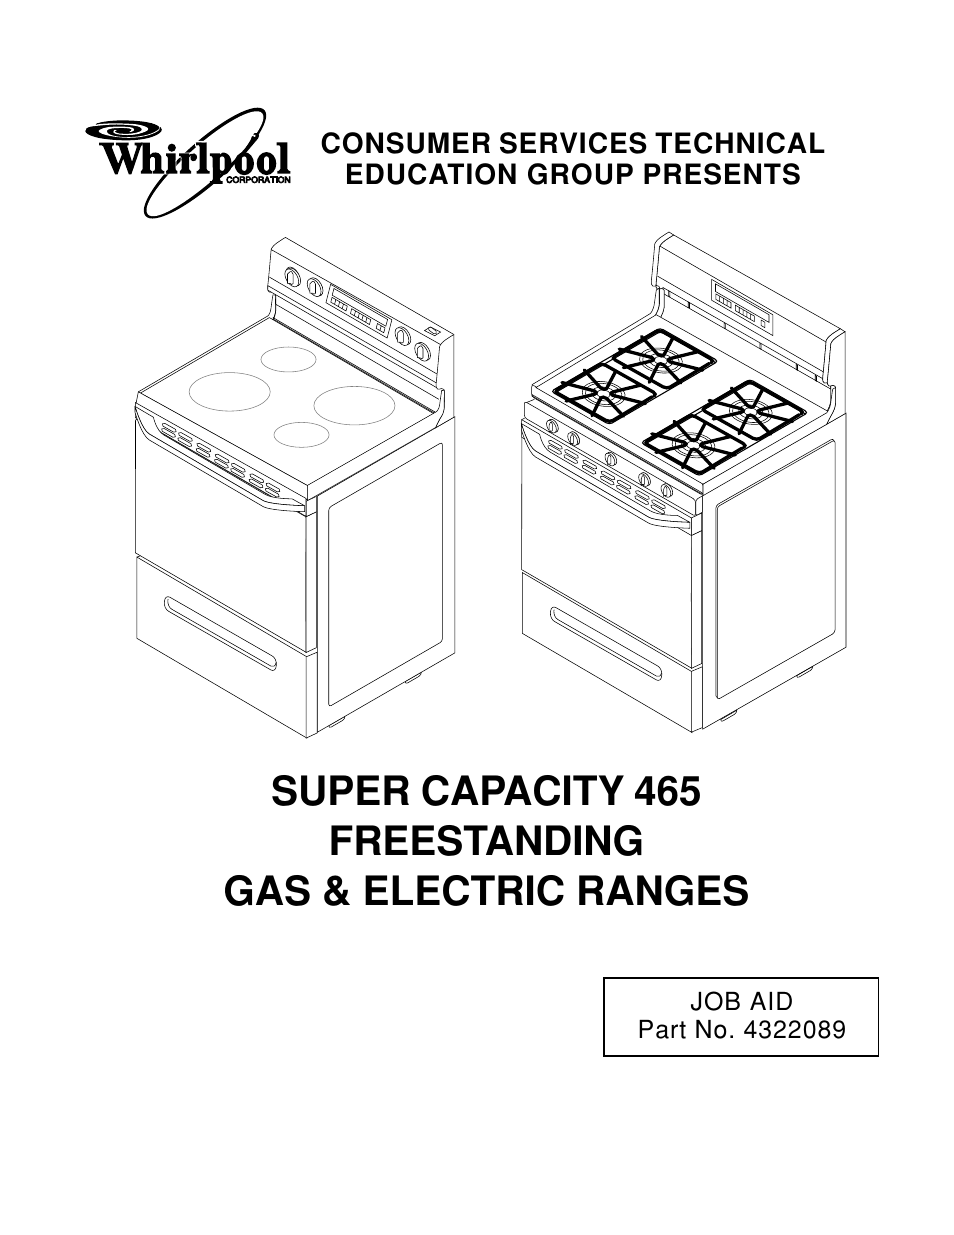 Whirlpool 465 Oven Wiring Schematic Trusted Diagram User Manual 32 Pages Also For Super Capacity Electric Dryer